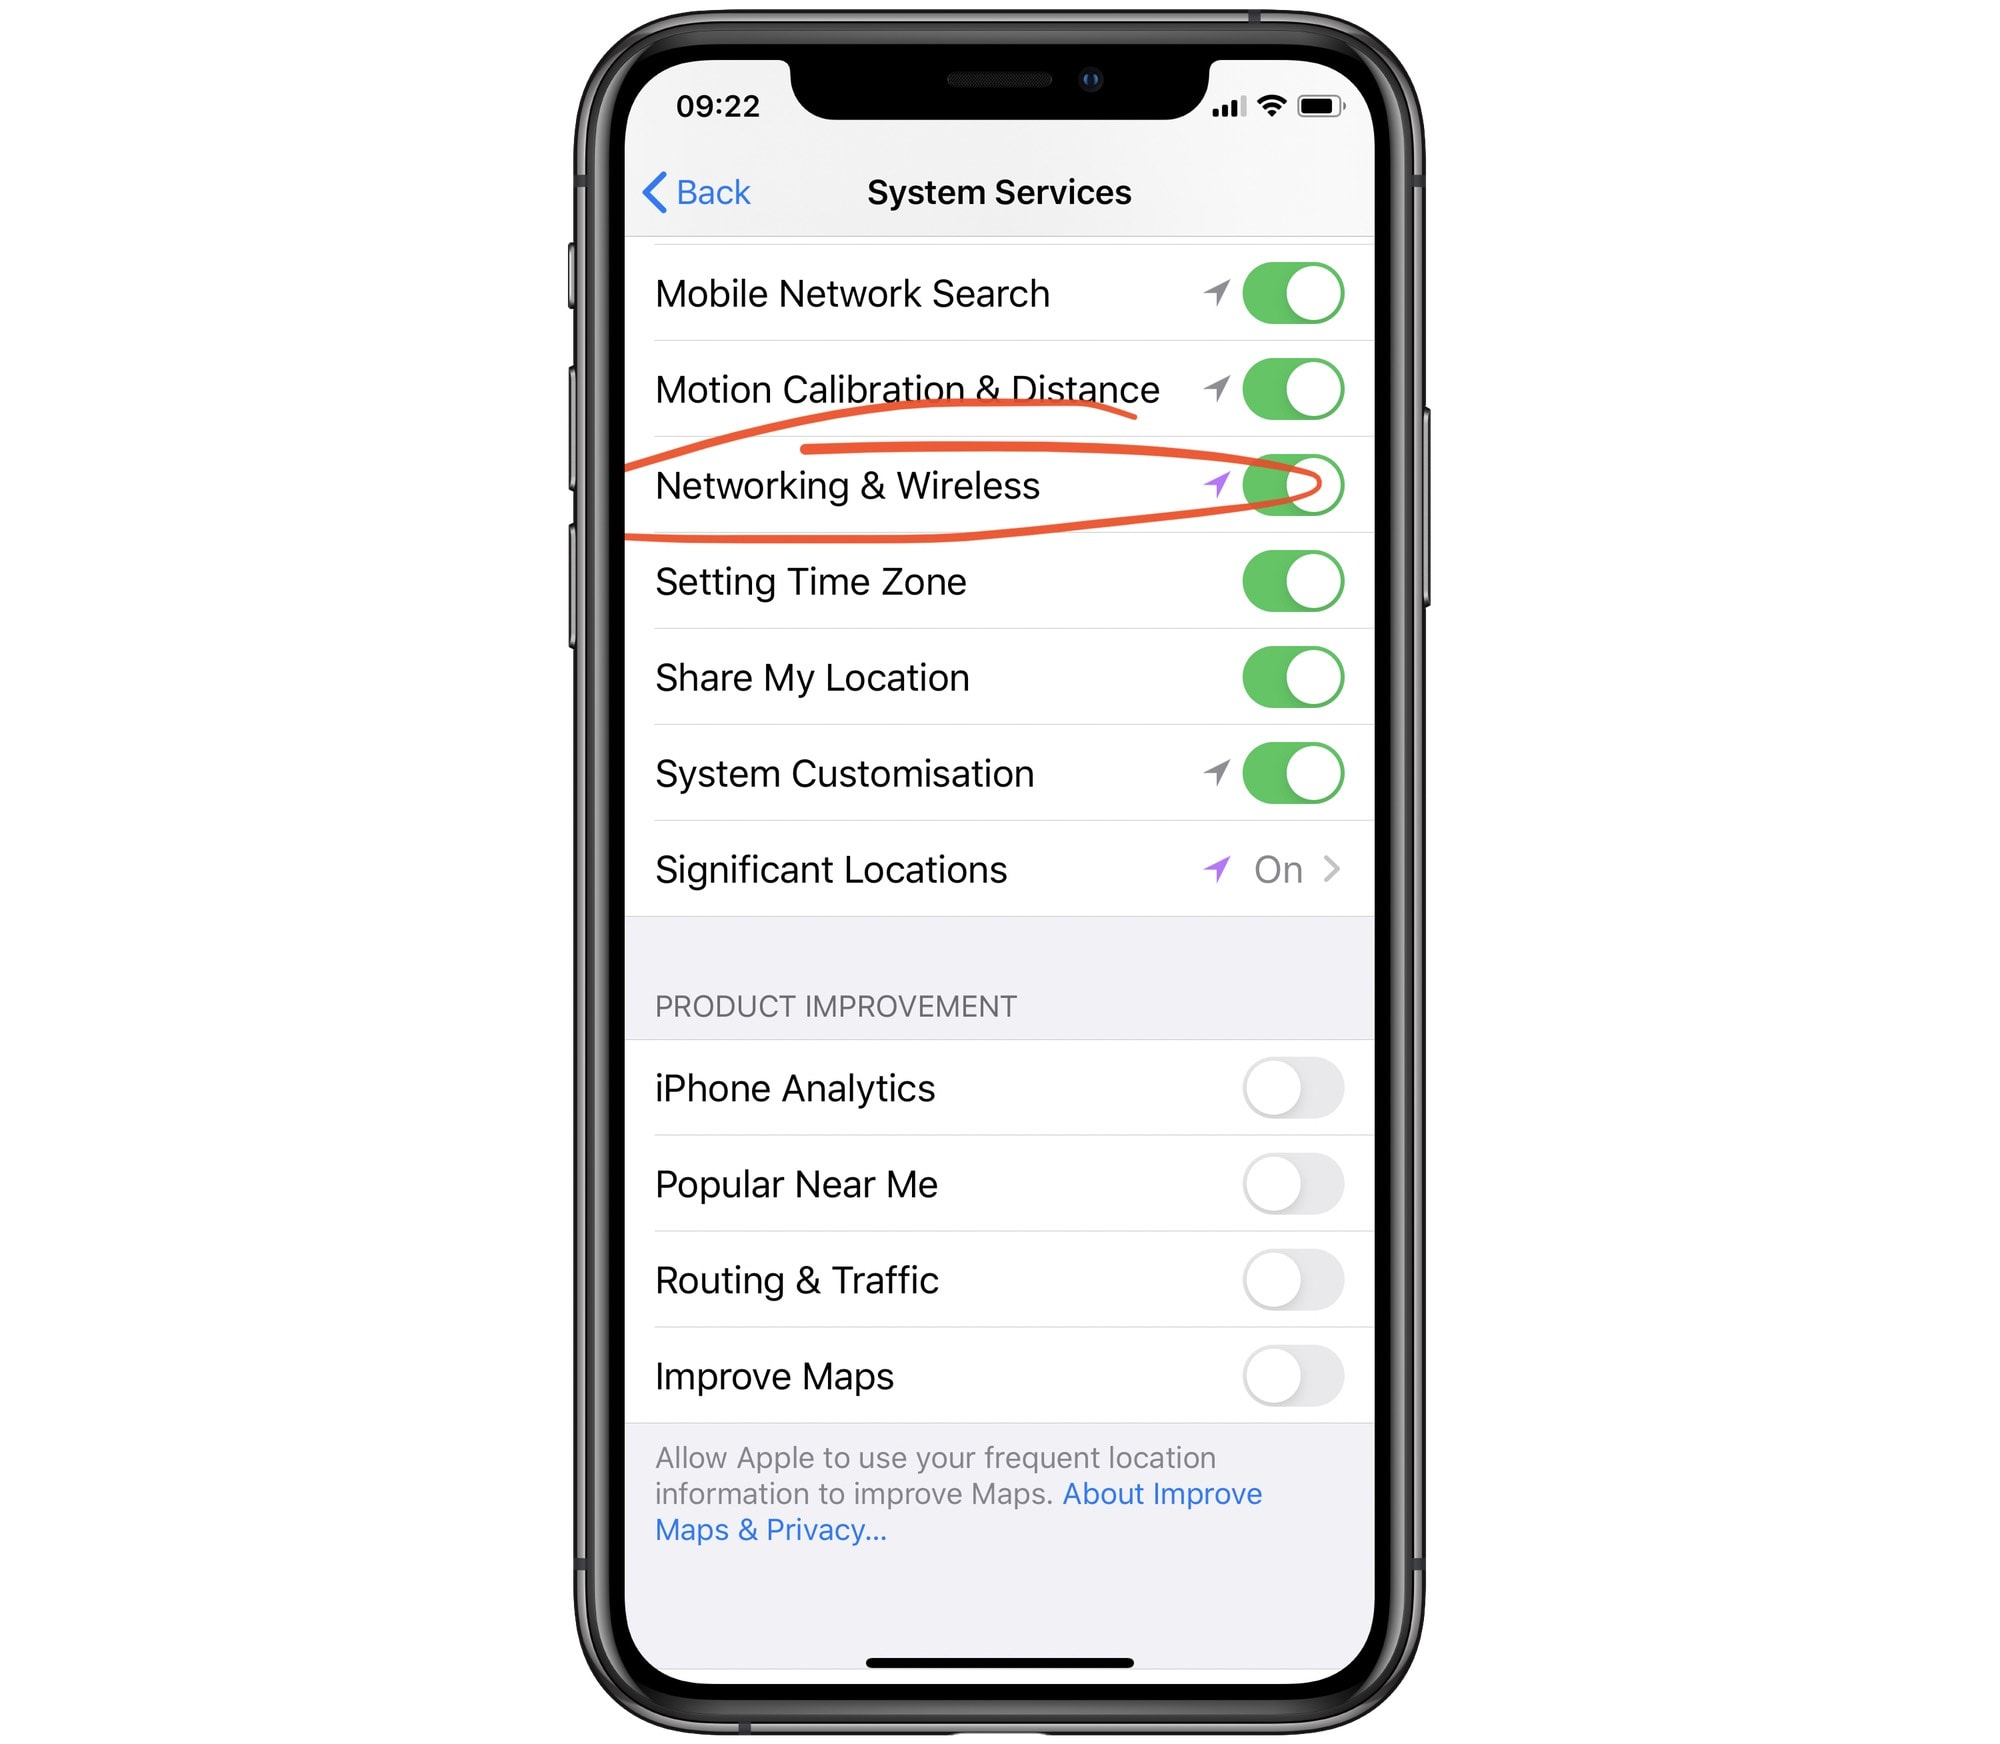 Disable location tracking for all network features.